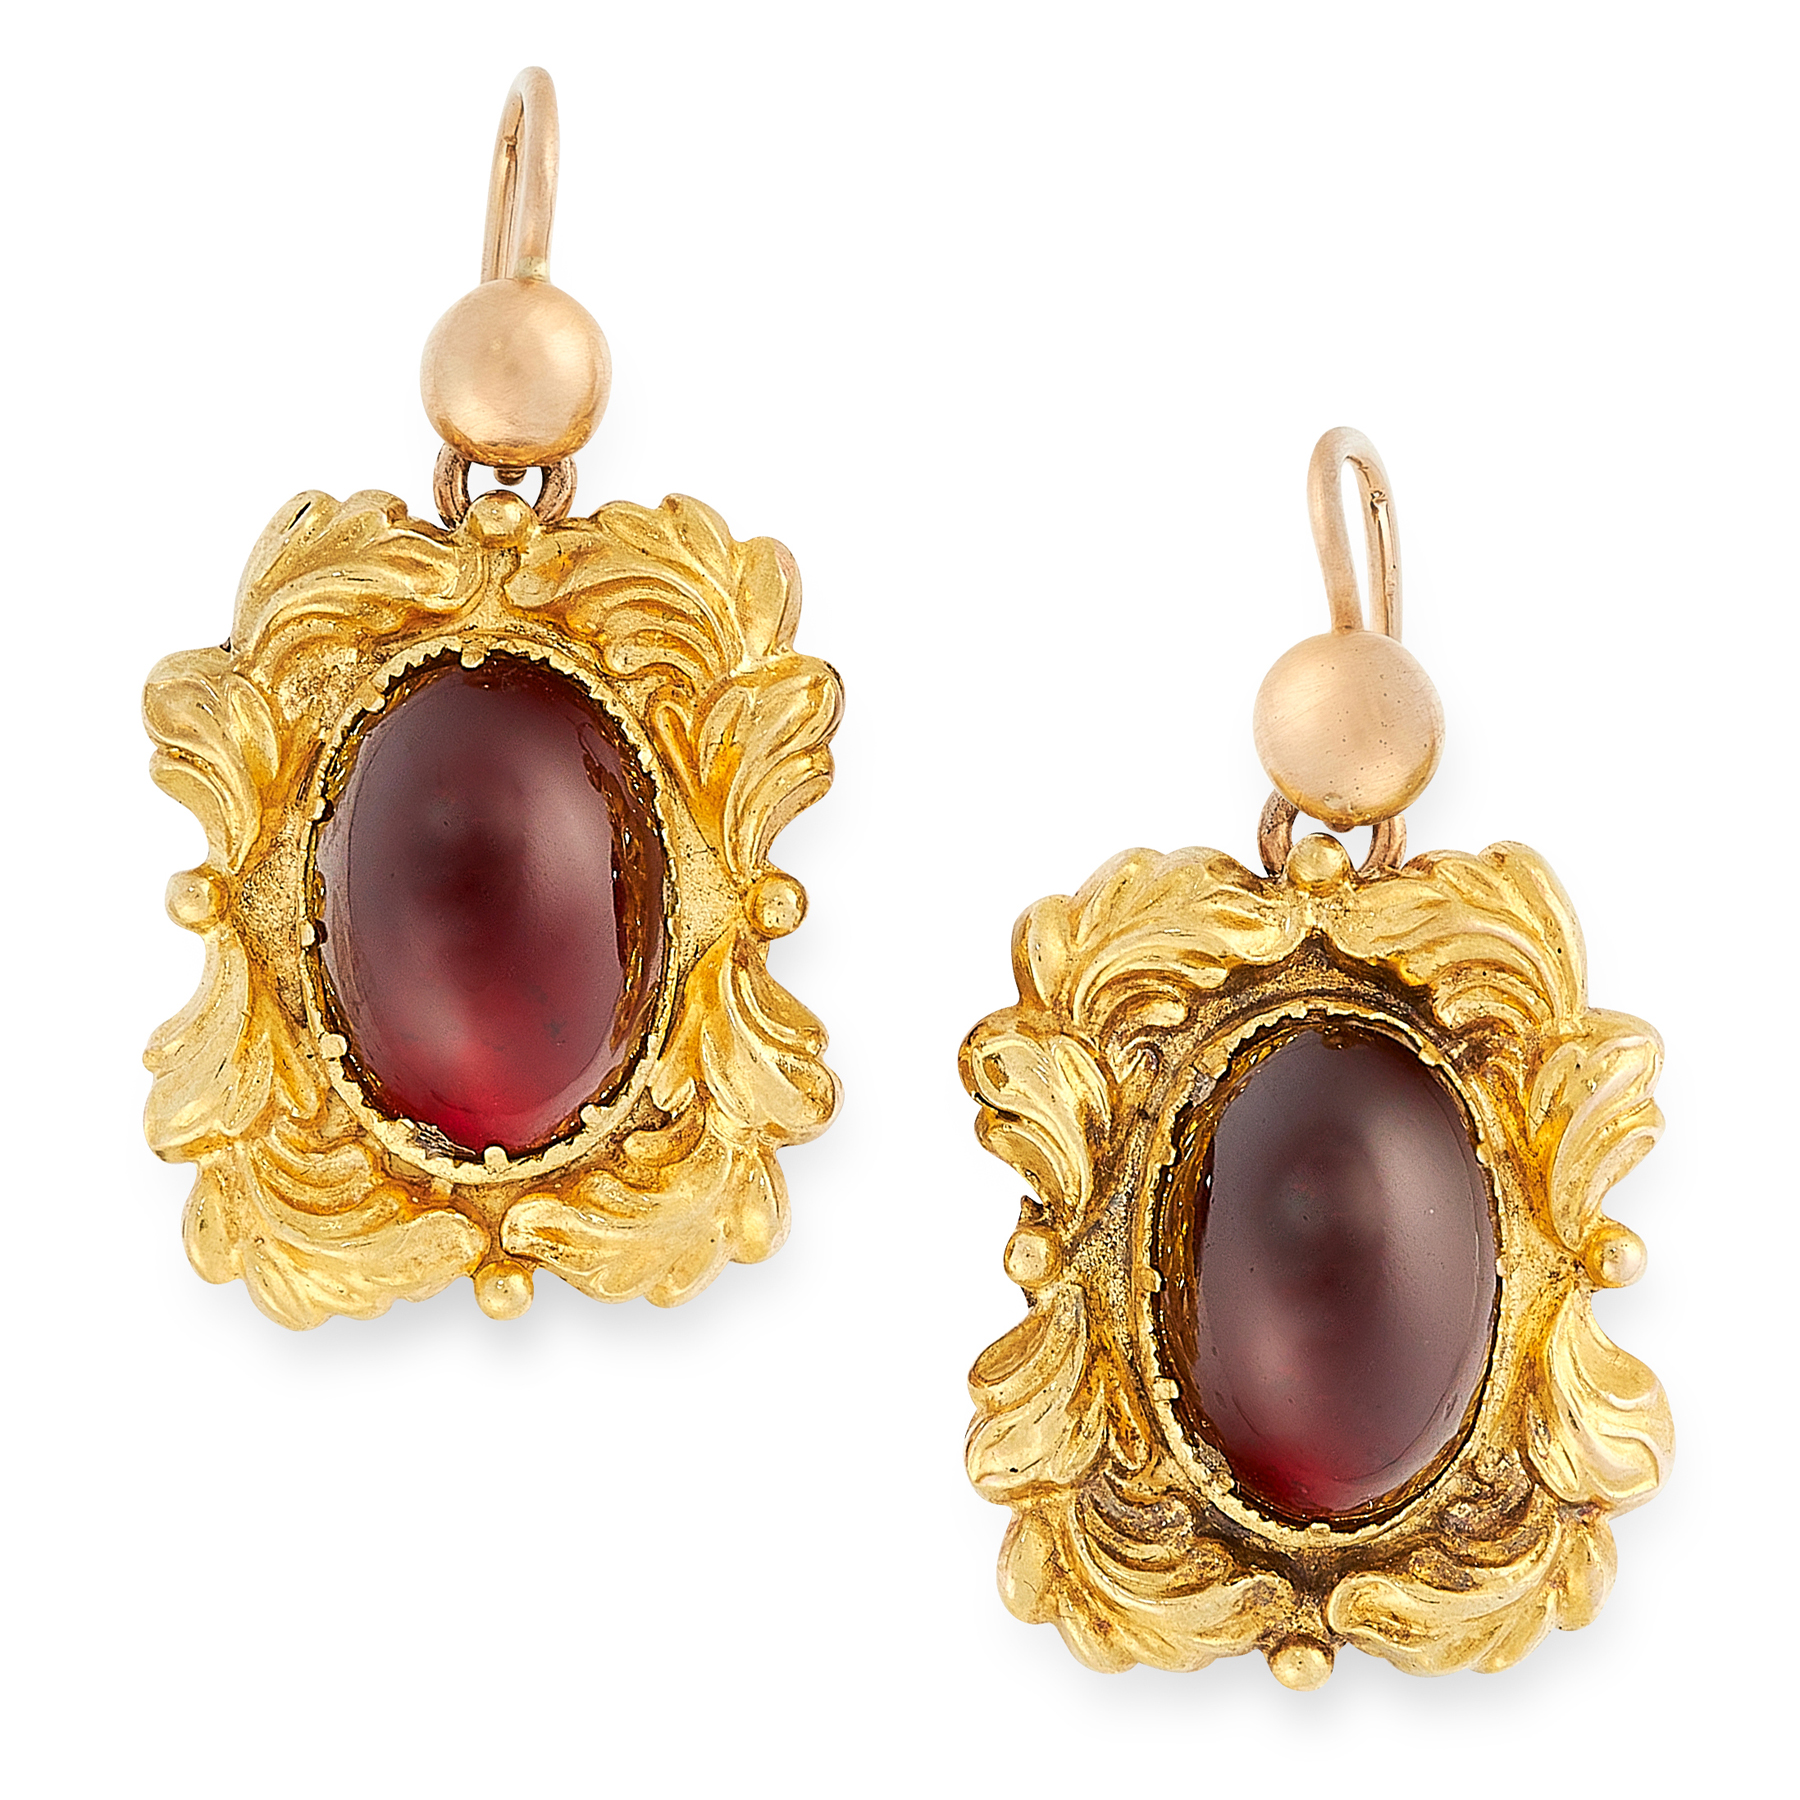 A PAIR OF ANTIQUE VICTORIAN GARNET EARRINGS in high carat yellow gold, the rectangular body is set